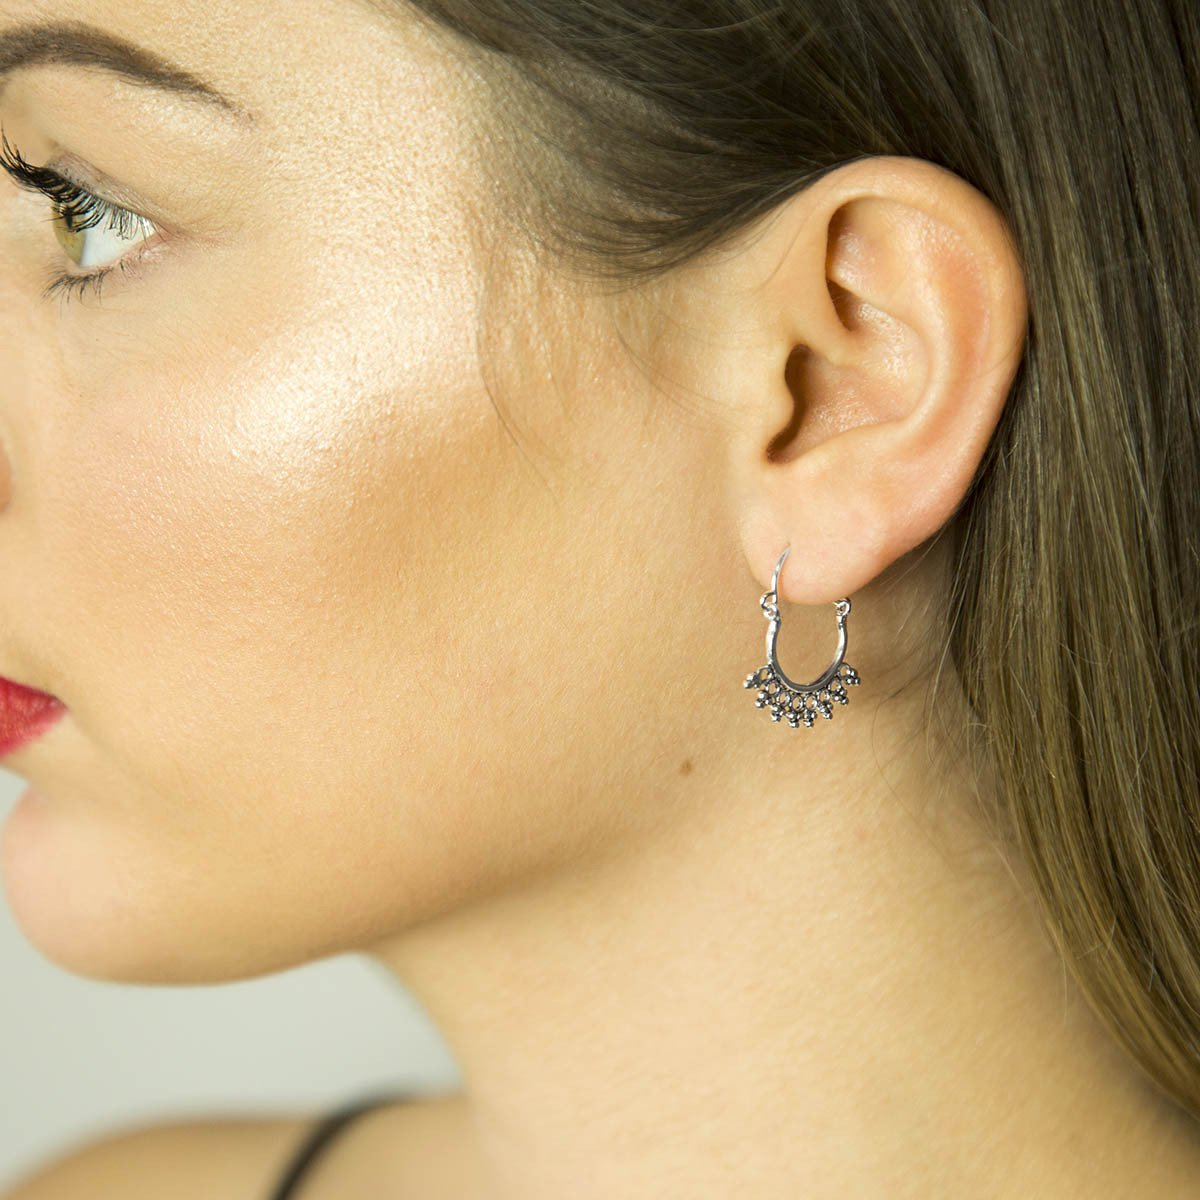 Sterling Silver Temple Hoops on Model with Brown/Blonde Hair